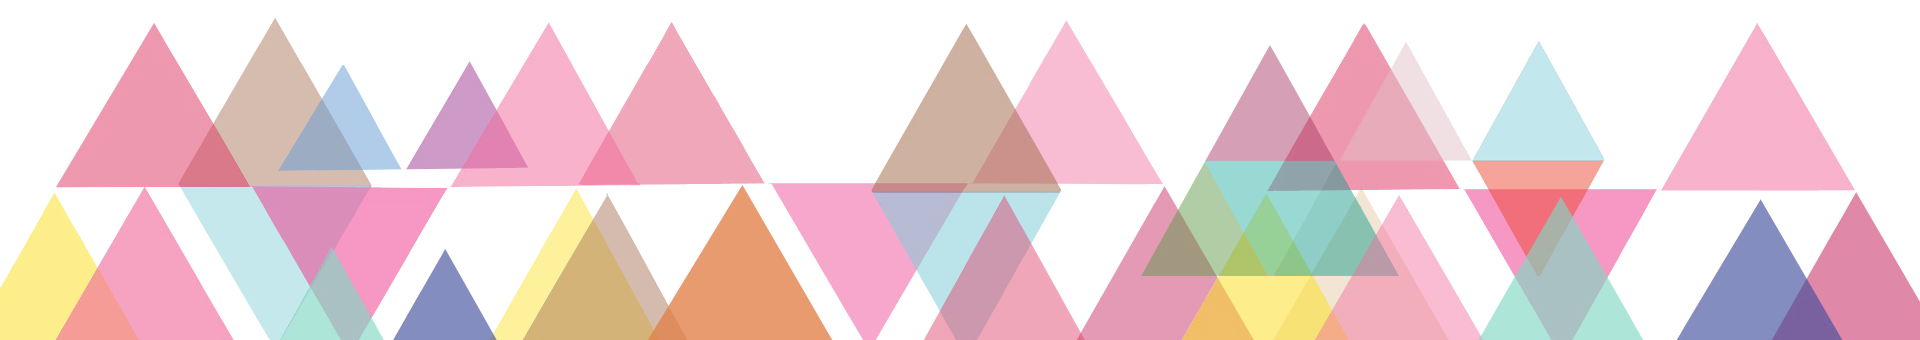 Triangles picture Bottom Strip.png